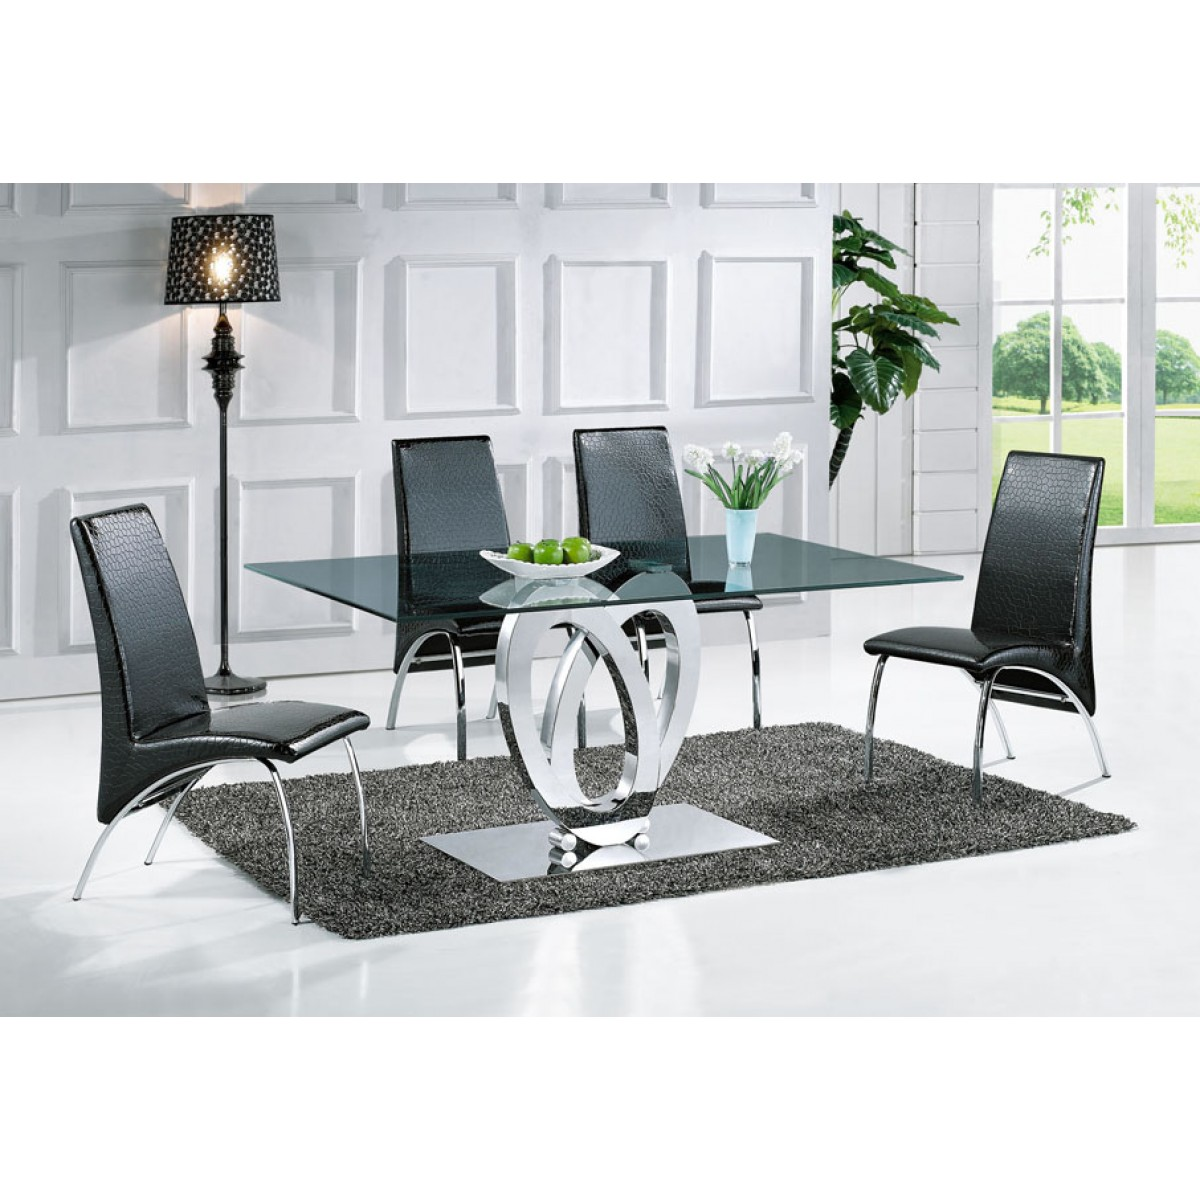 table de salle manger design ellipse taille au choix On table salle a manger design but